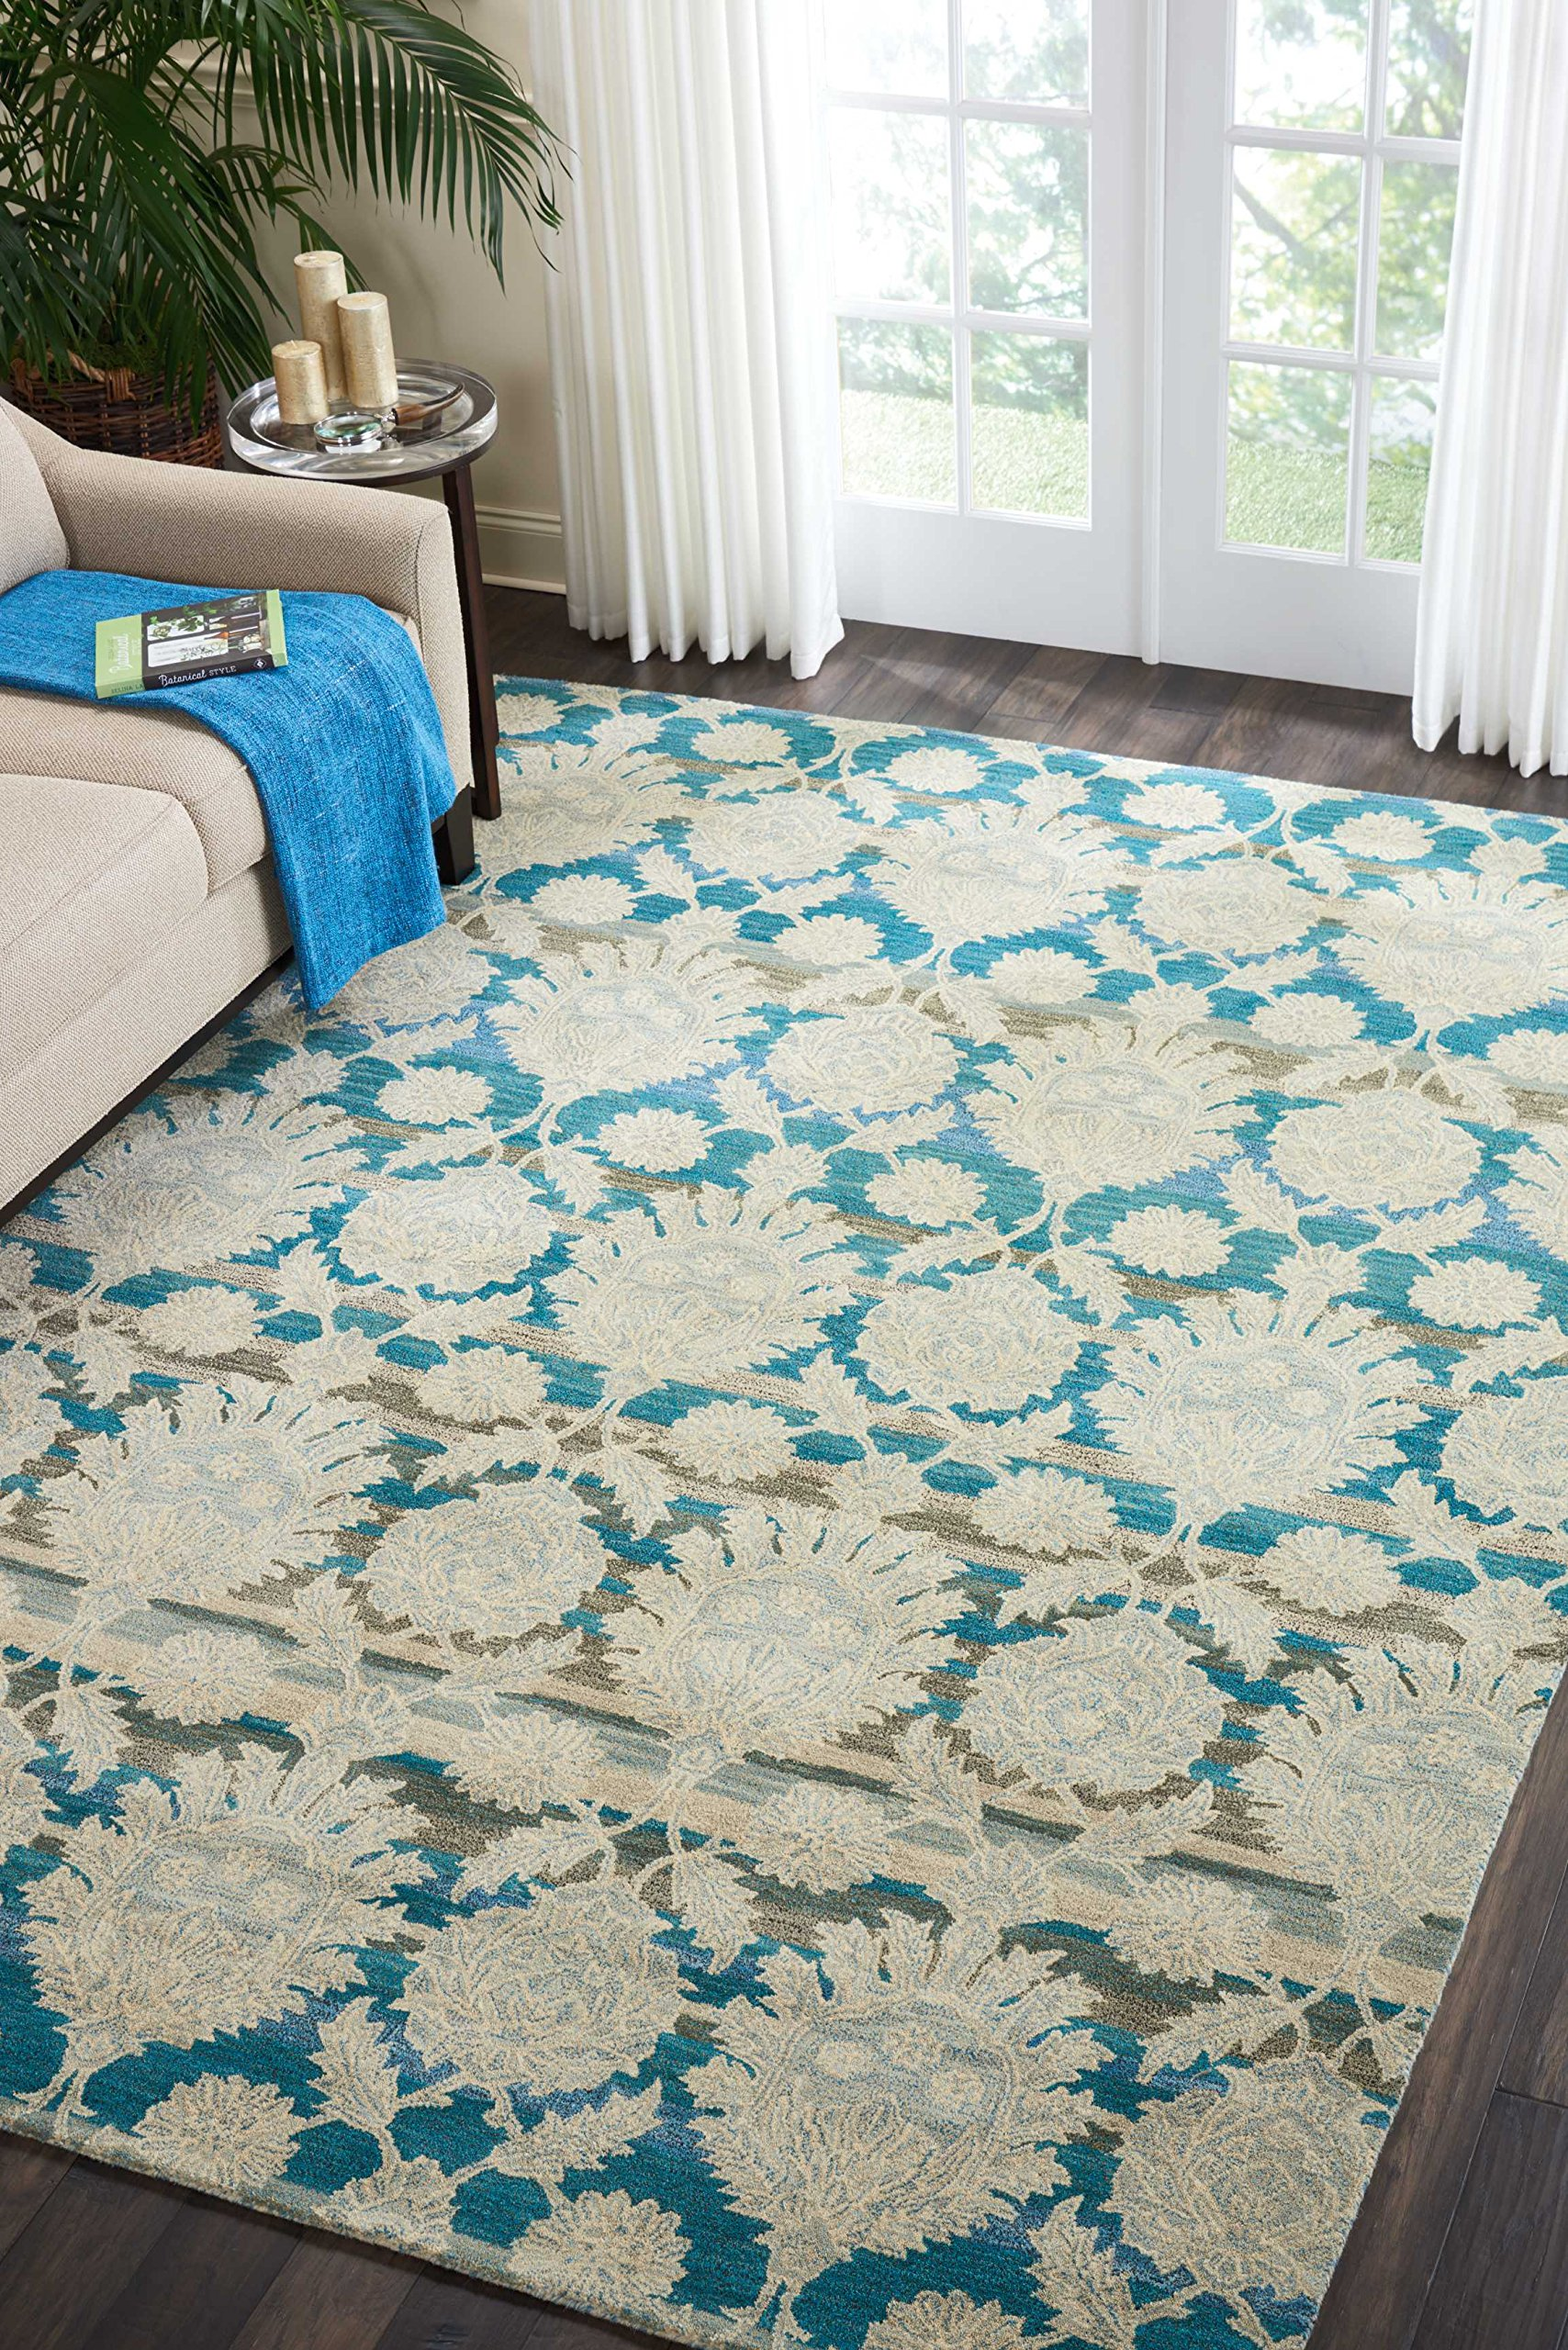 Nourison IH91 India House Area Rug, 8'X10'6'', IVORY/TEAL by Nourison (Image #2)